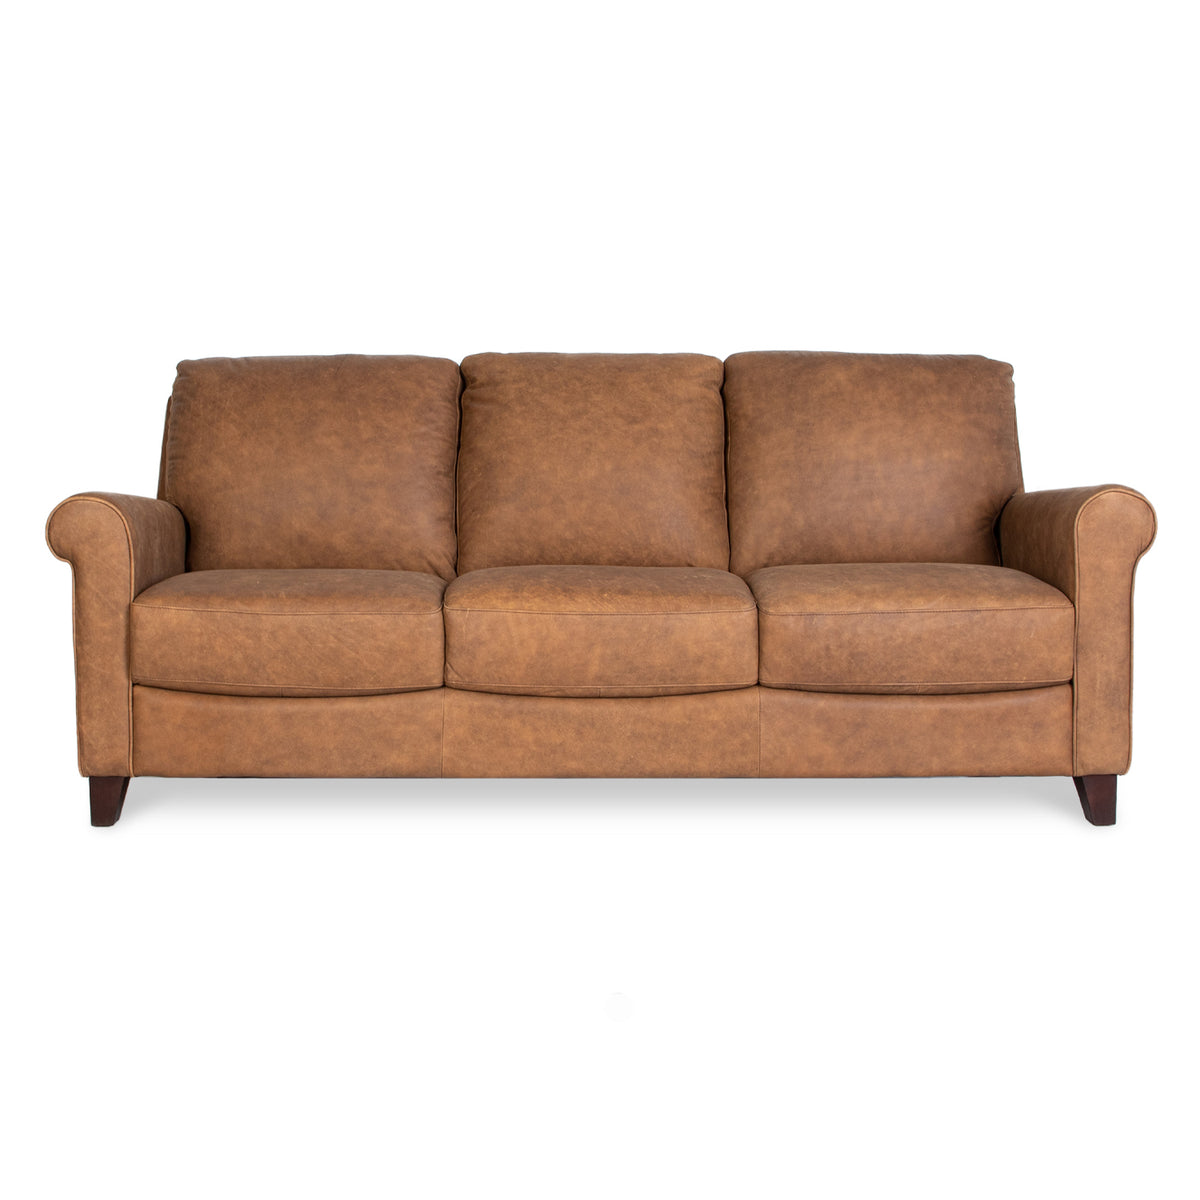 Camilla Leather 3 Seat Sofa in Naples Natural